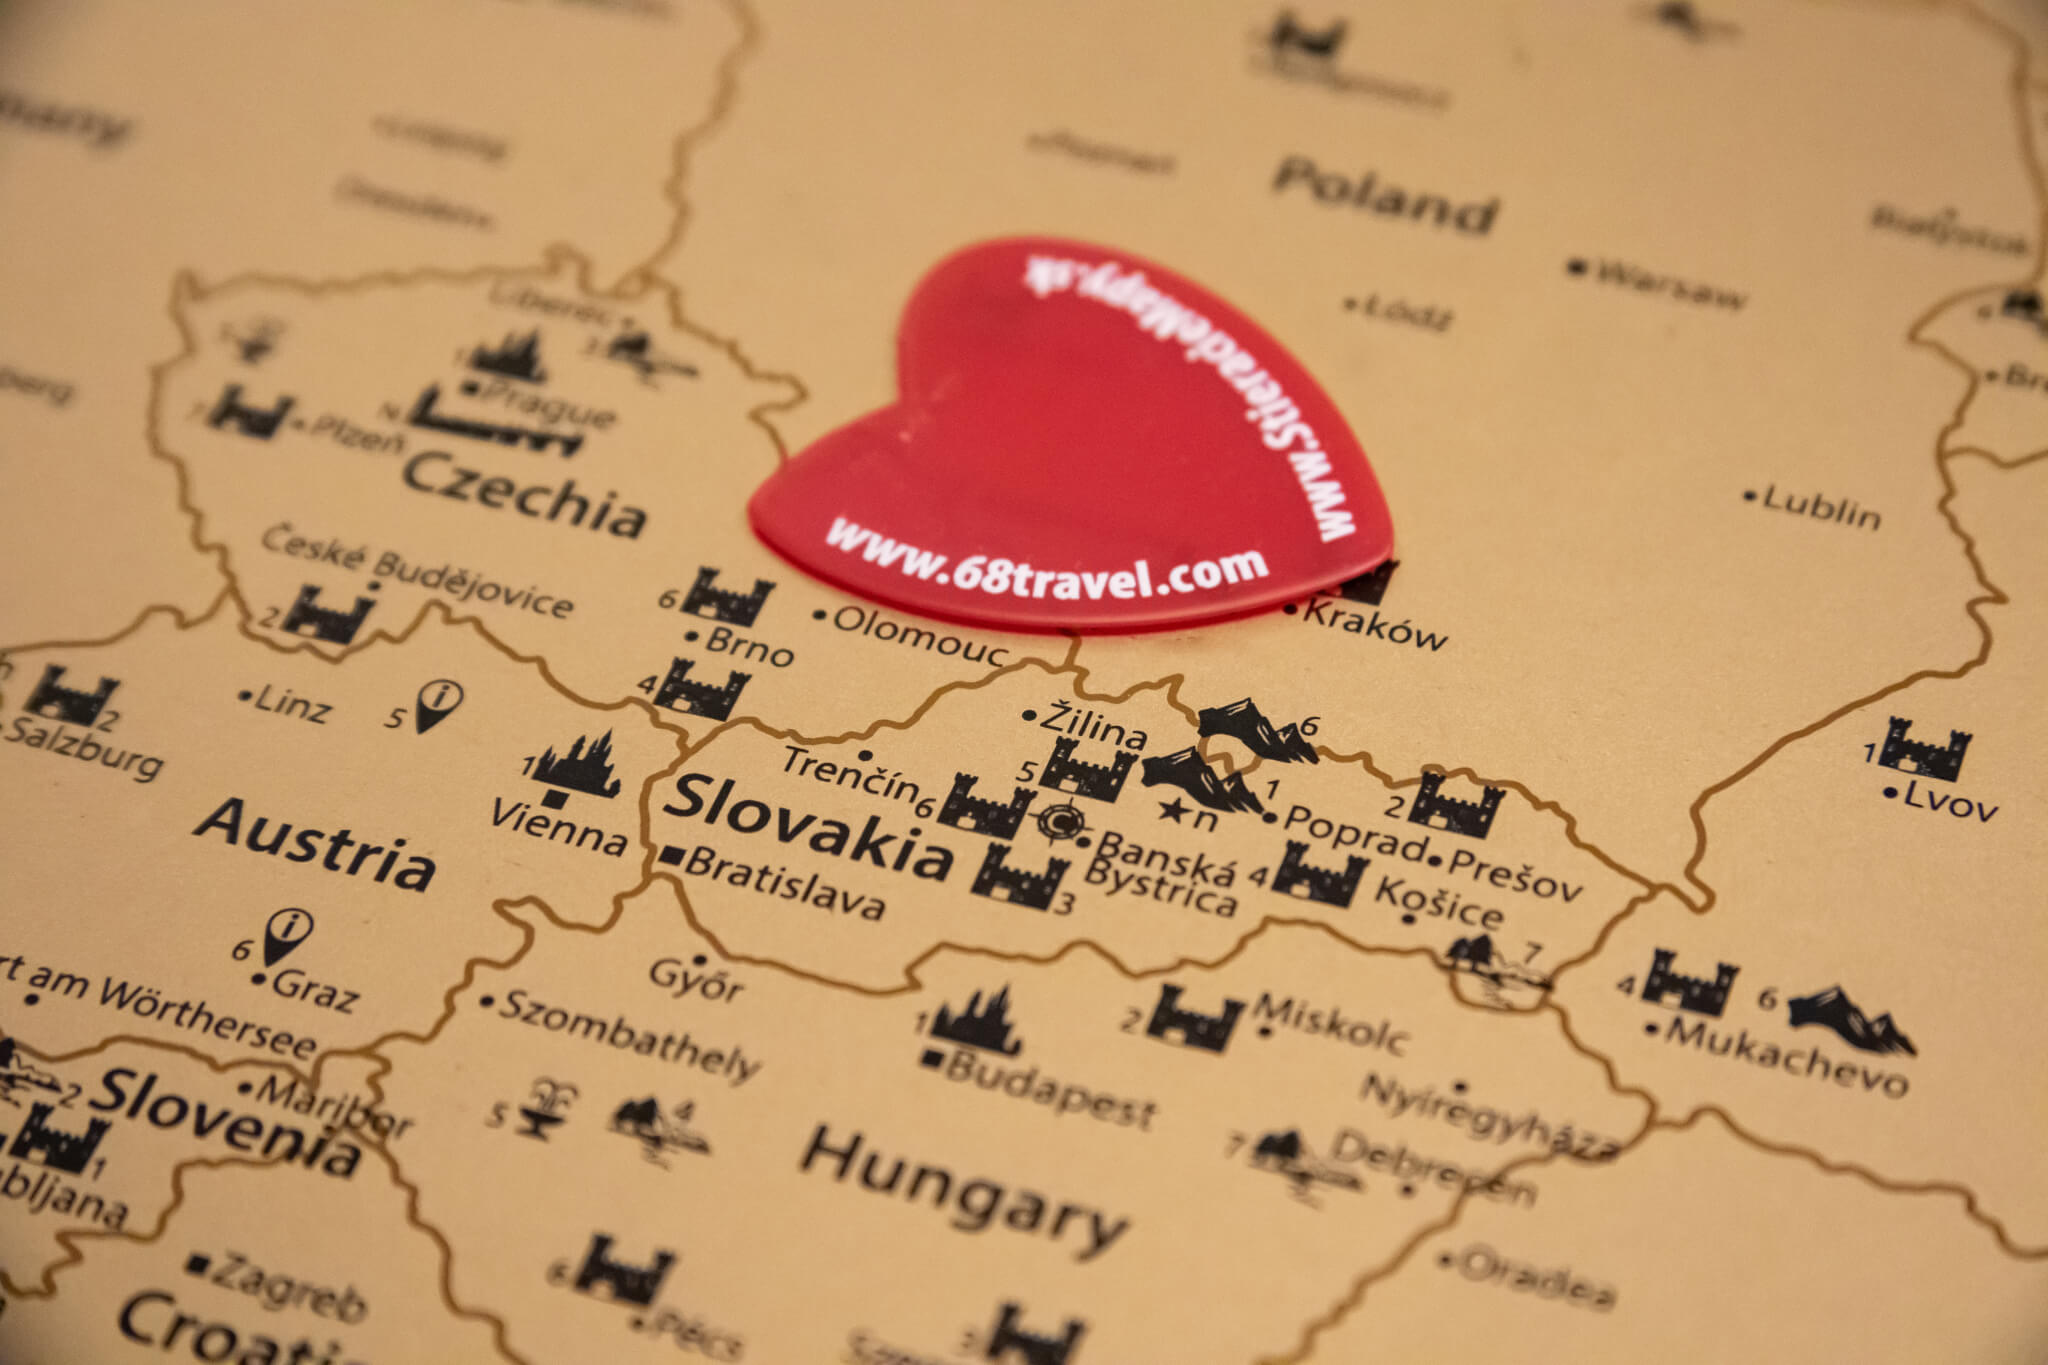 Scratch Map of Europe - Detail of scratcher in Central Europe